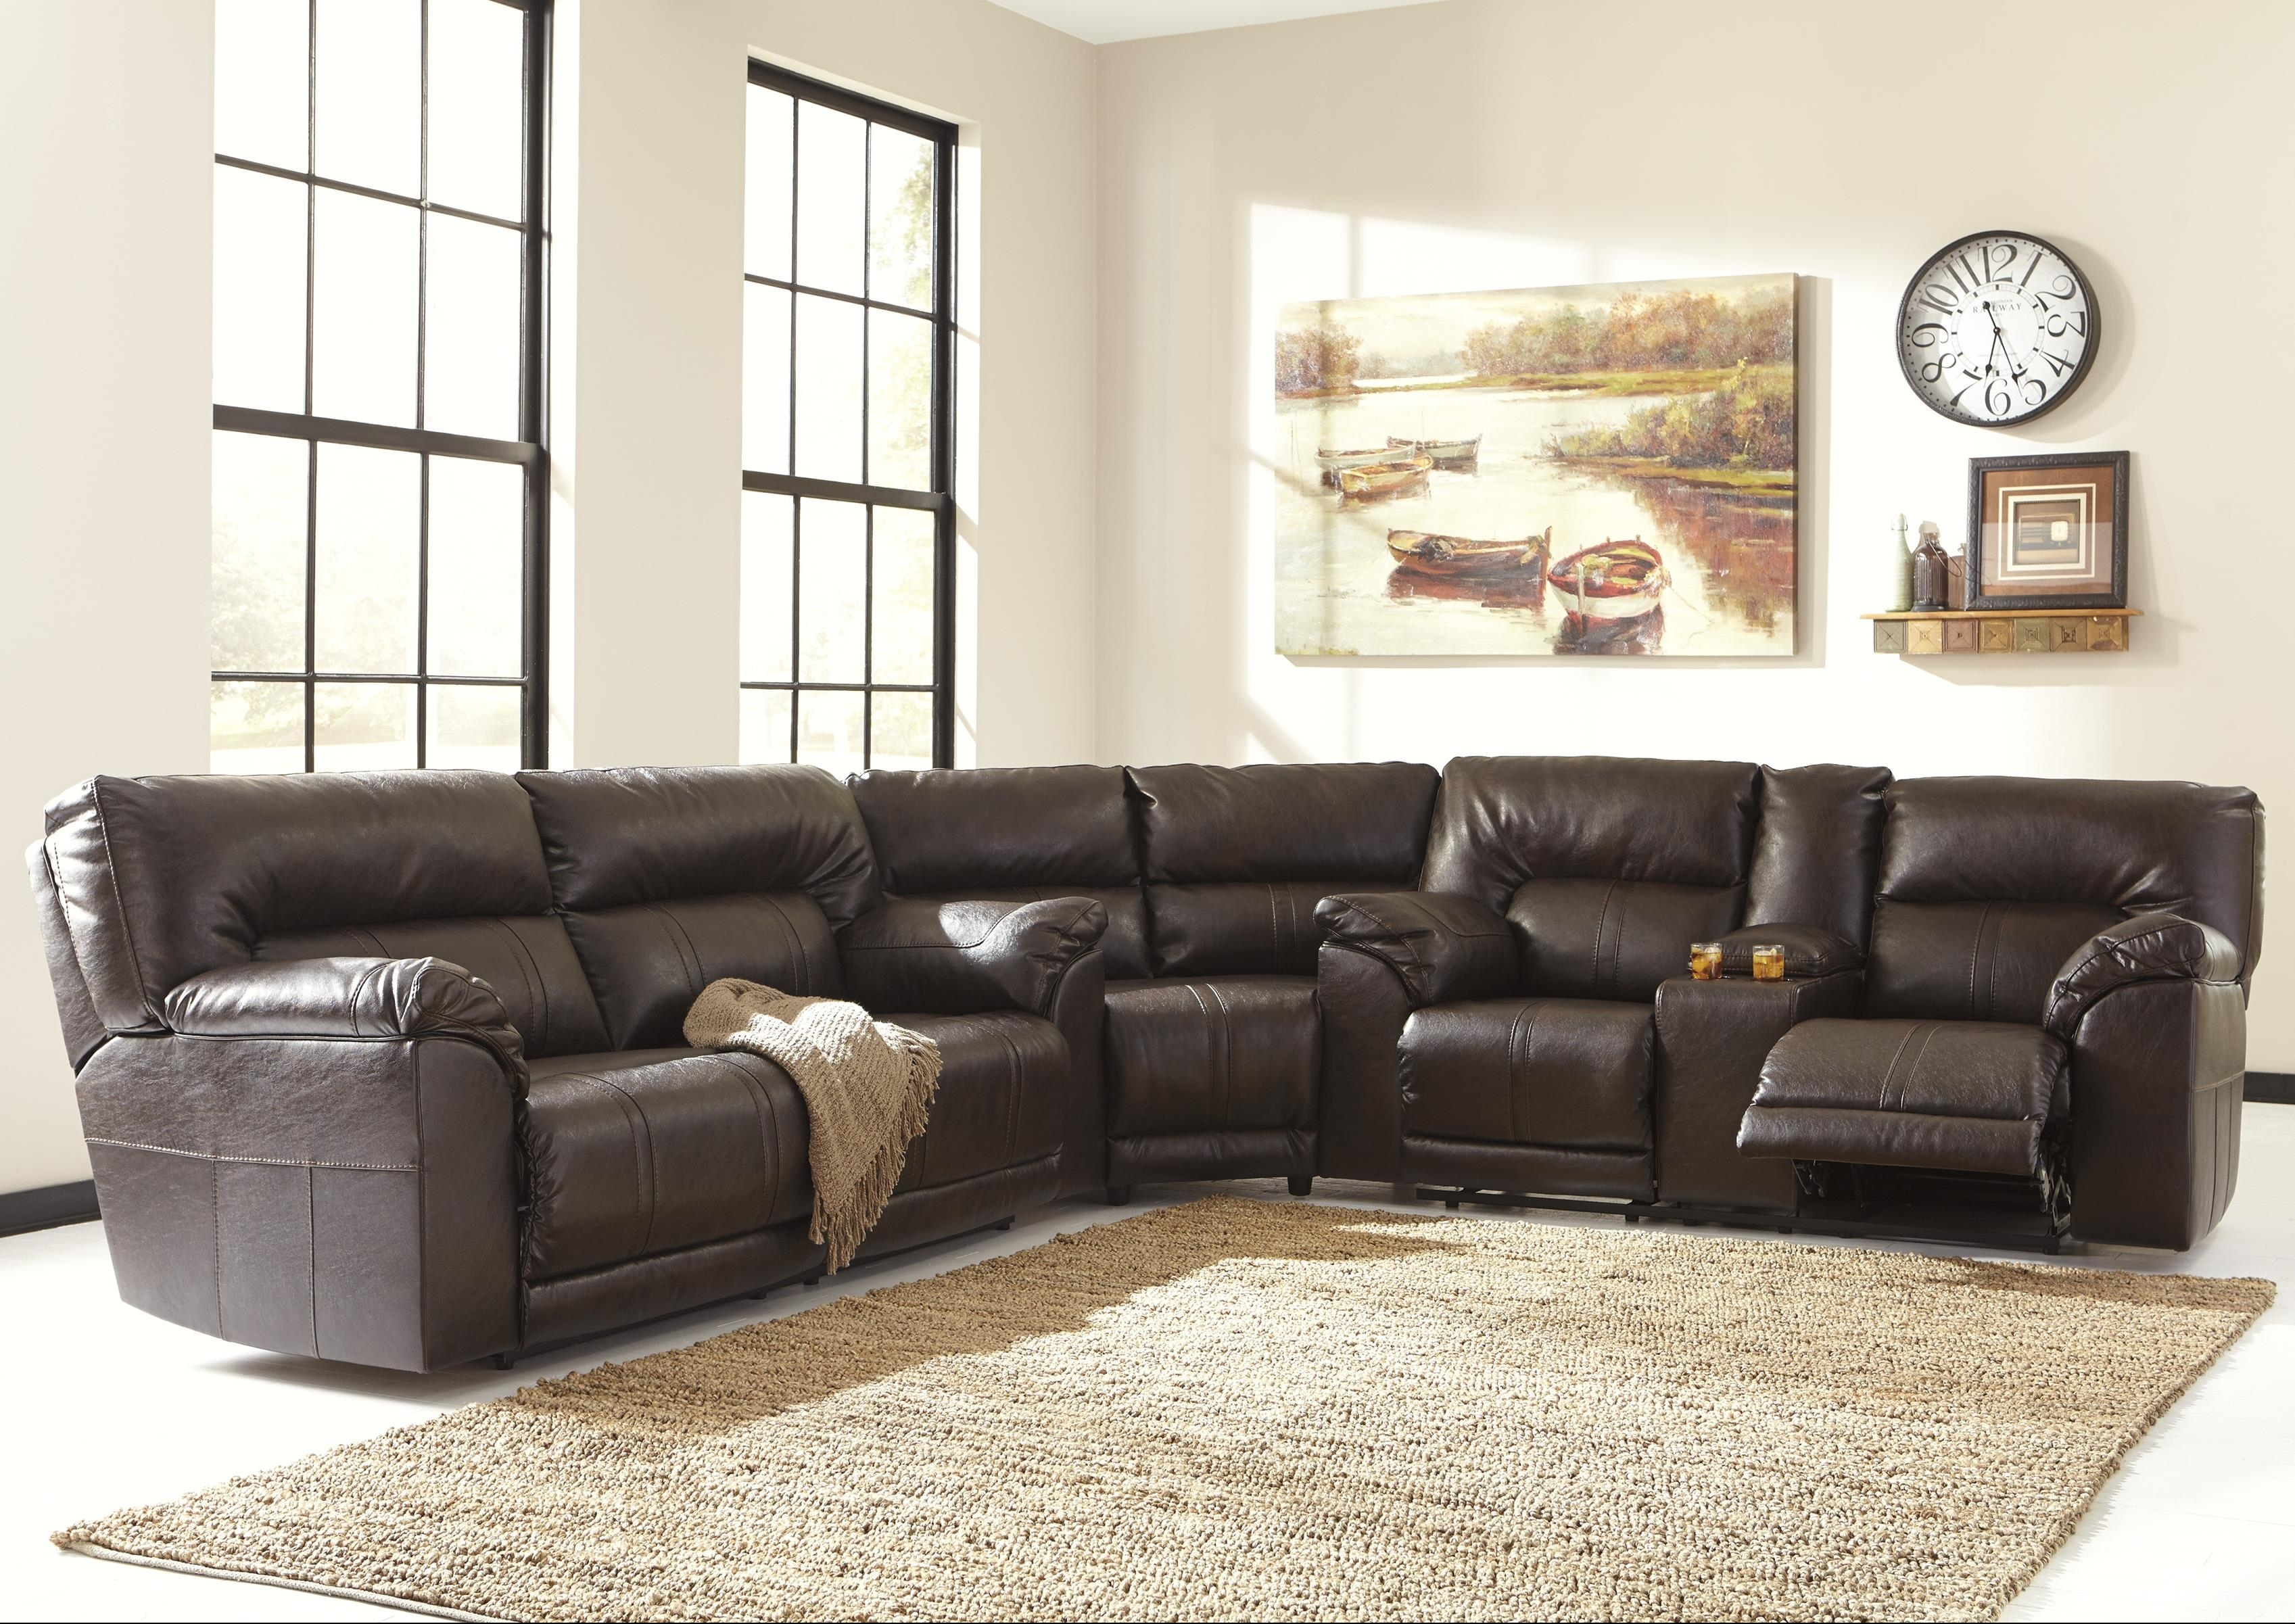 Benchcraftashley Barrettsville Durablend® 3-Piece Reclining pertaining to Sectional Sofas at Birmingham Al (Image 2 of 15)